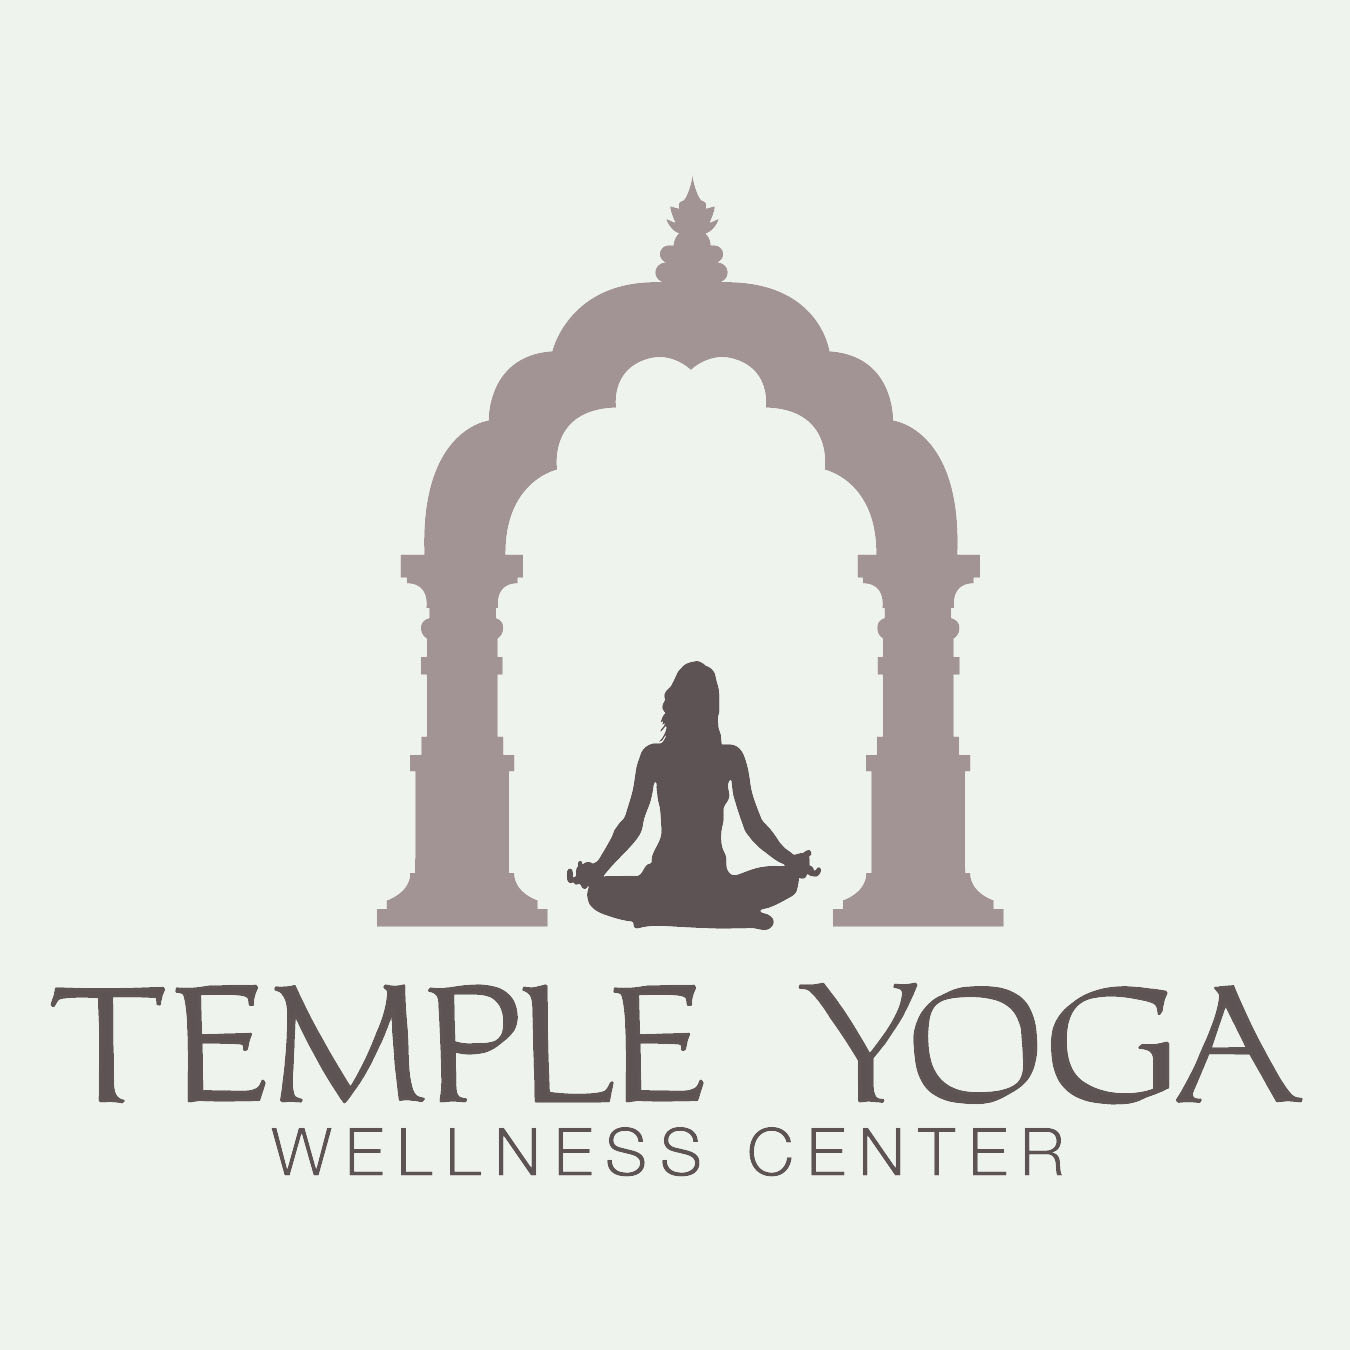 Temple Yoga Wellness Center